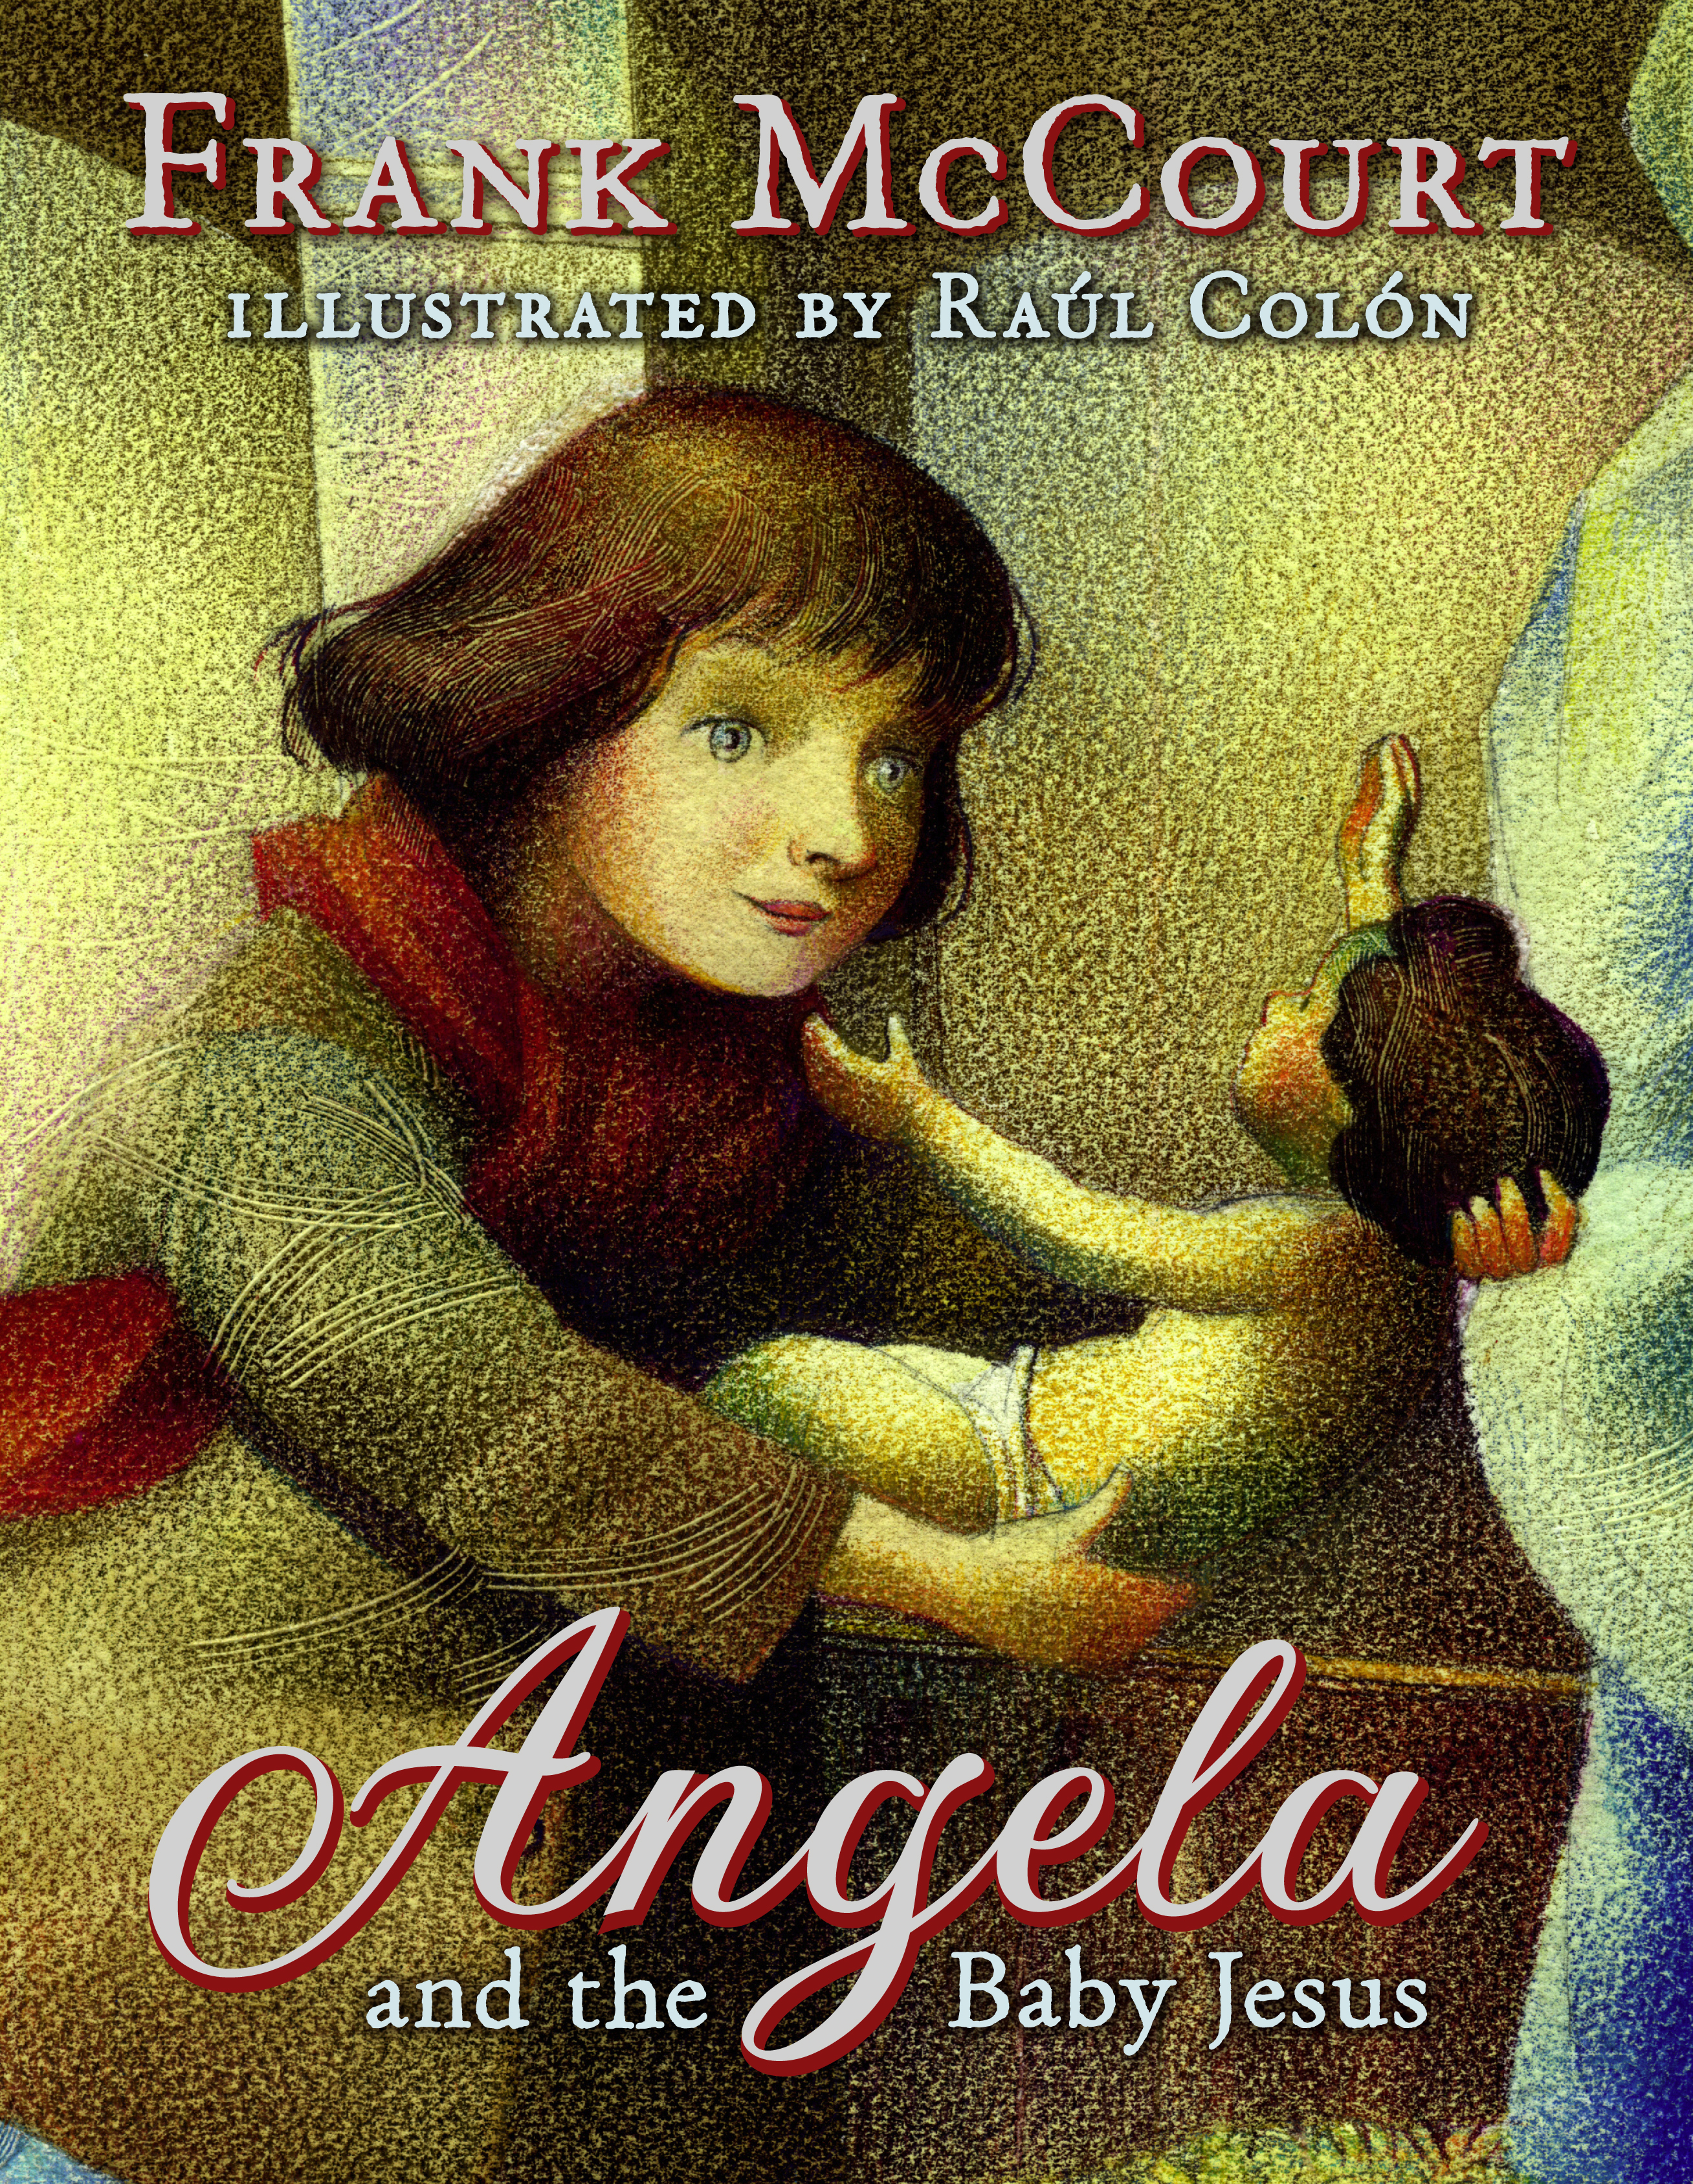 What is the significance of the great depression in the book angela's ashes?